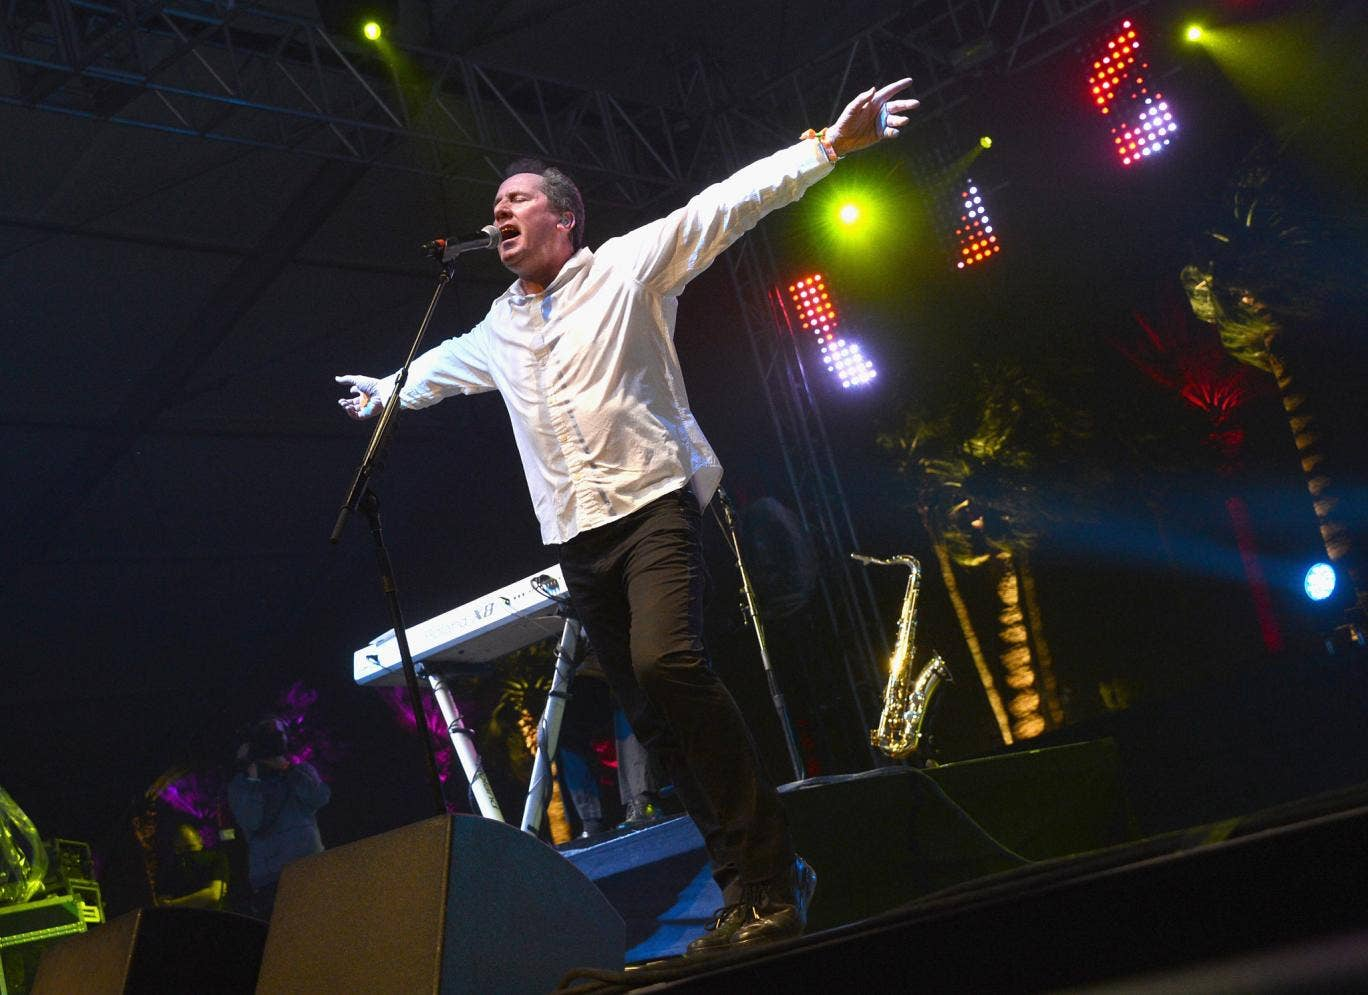 Orchestral Manoeuvres performing at Coachella 2013